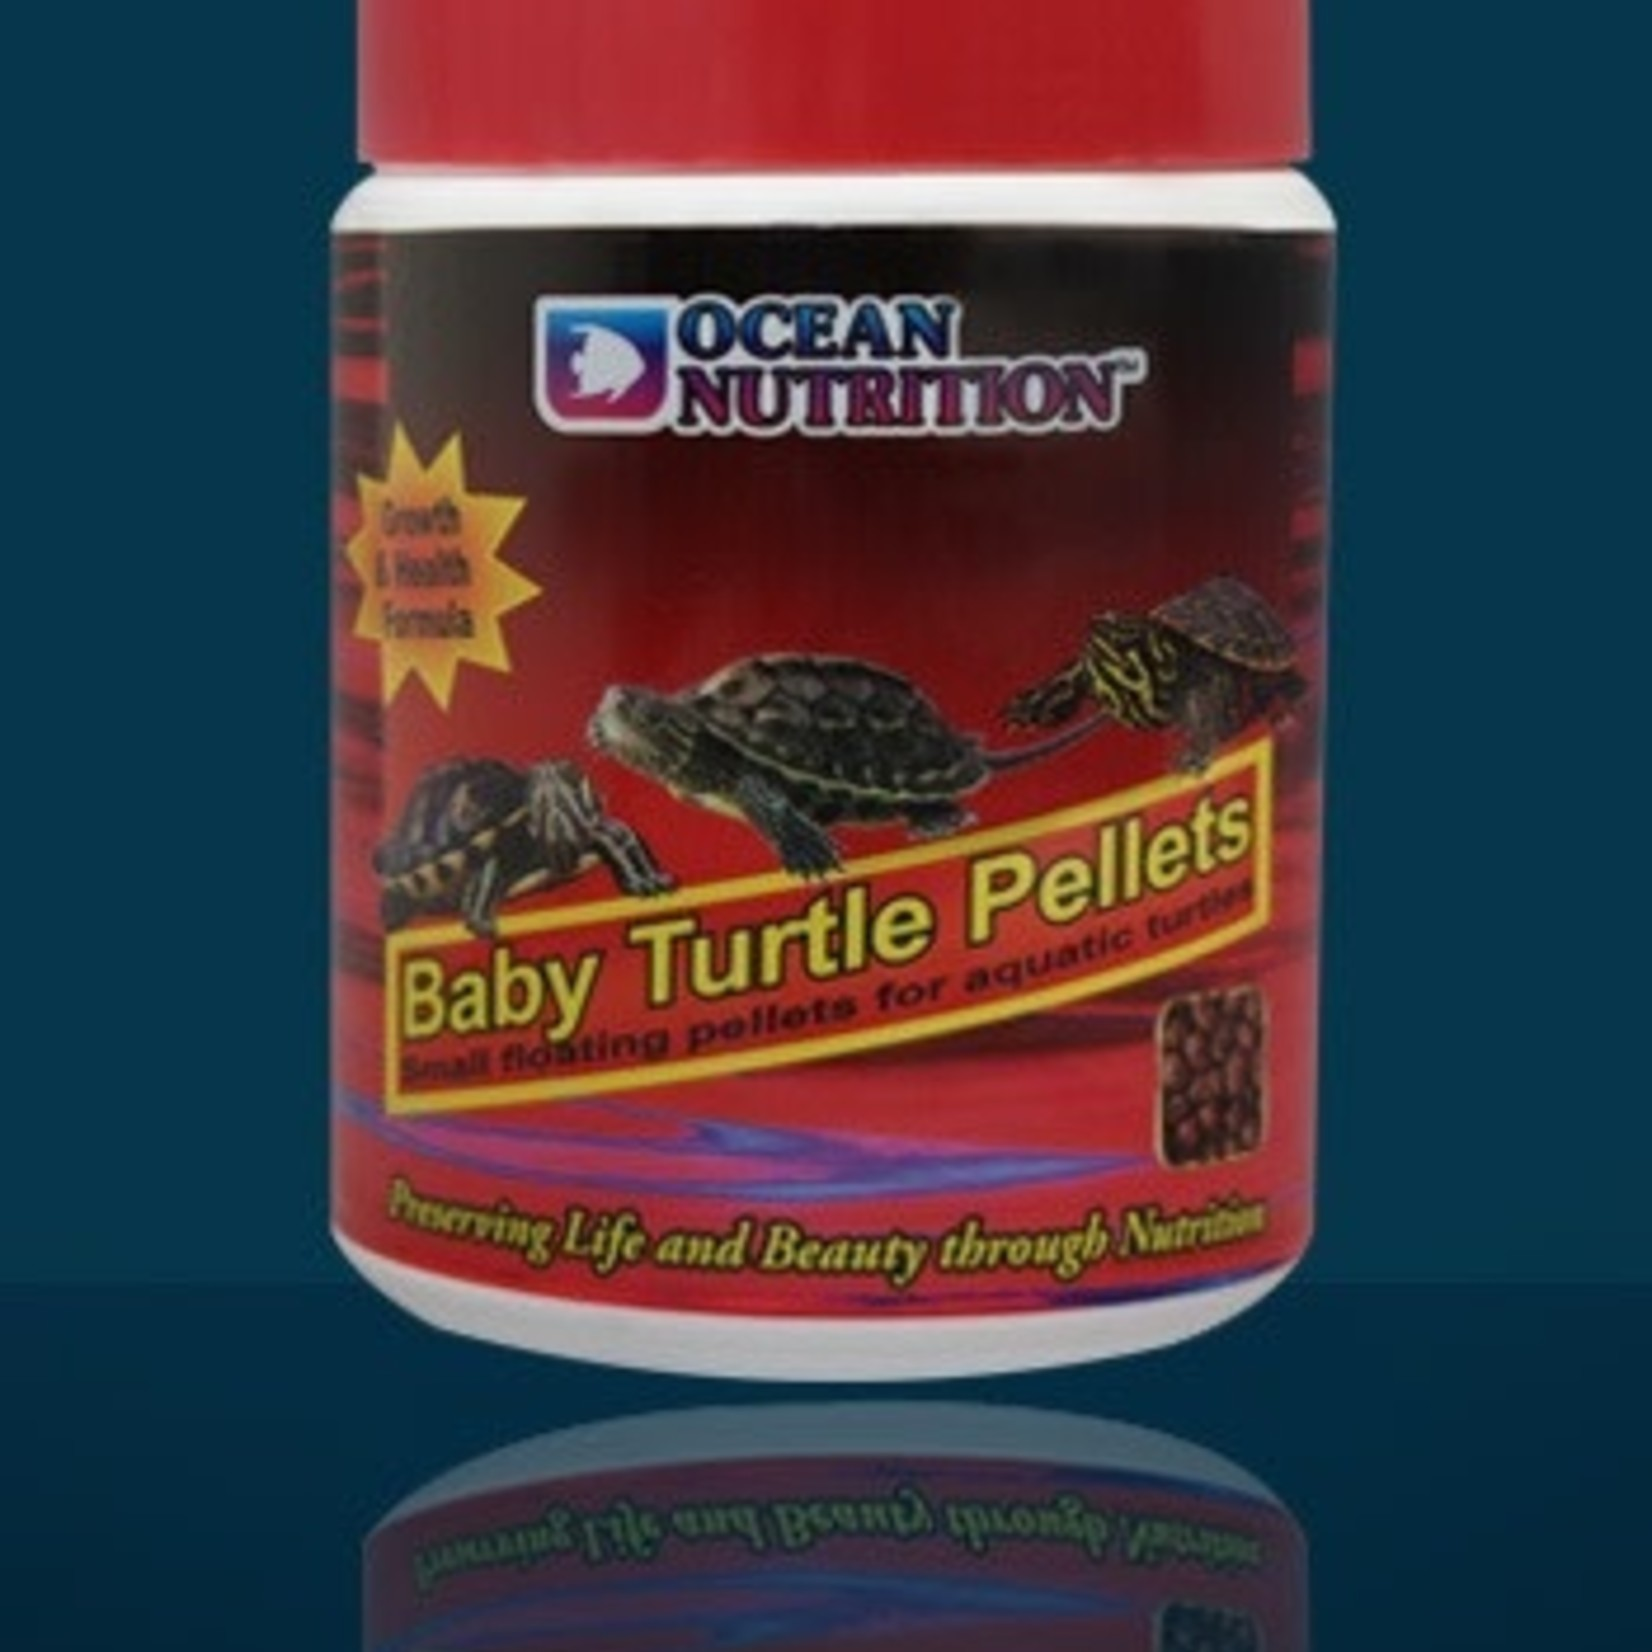 Ocean Nutrition Baby Turtle Pellets